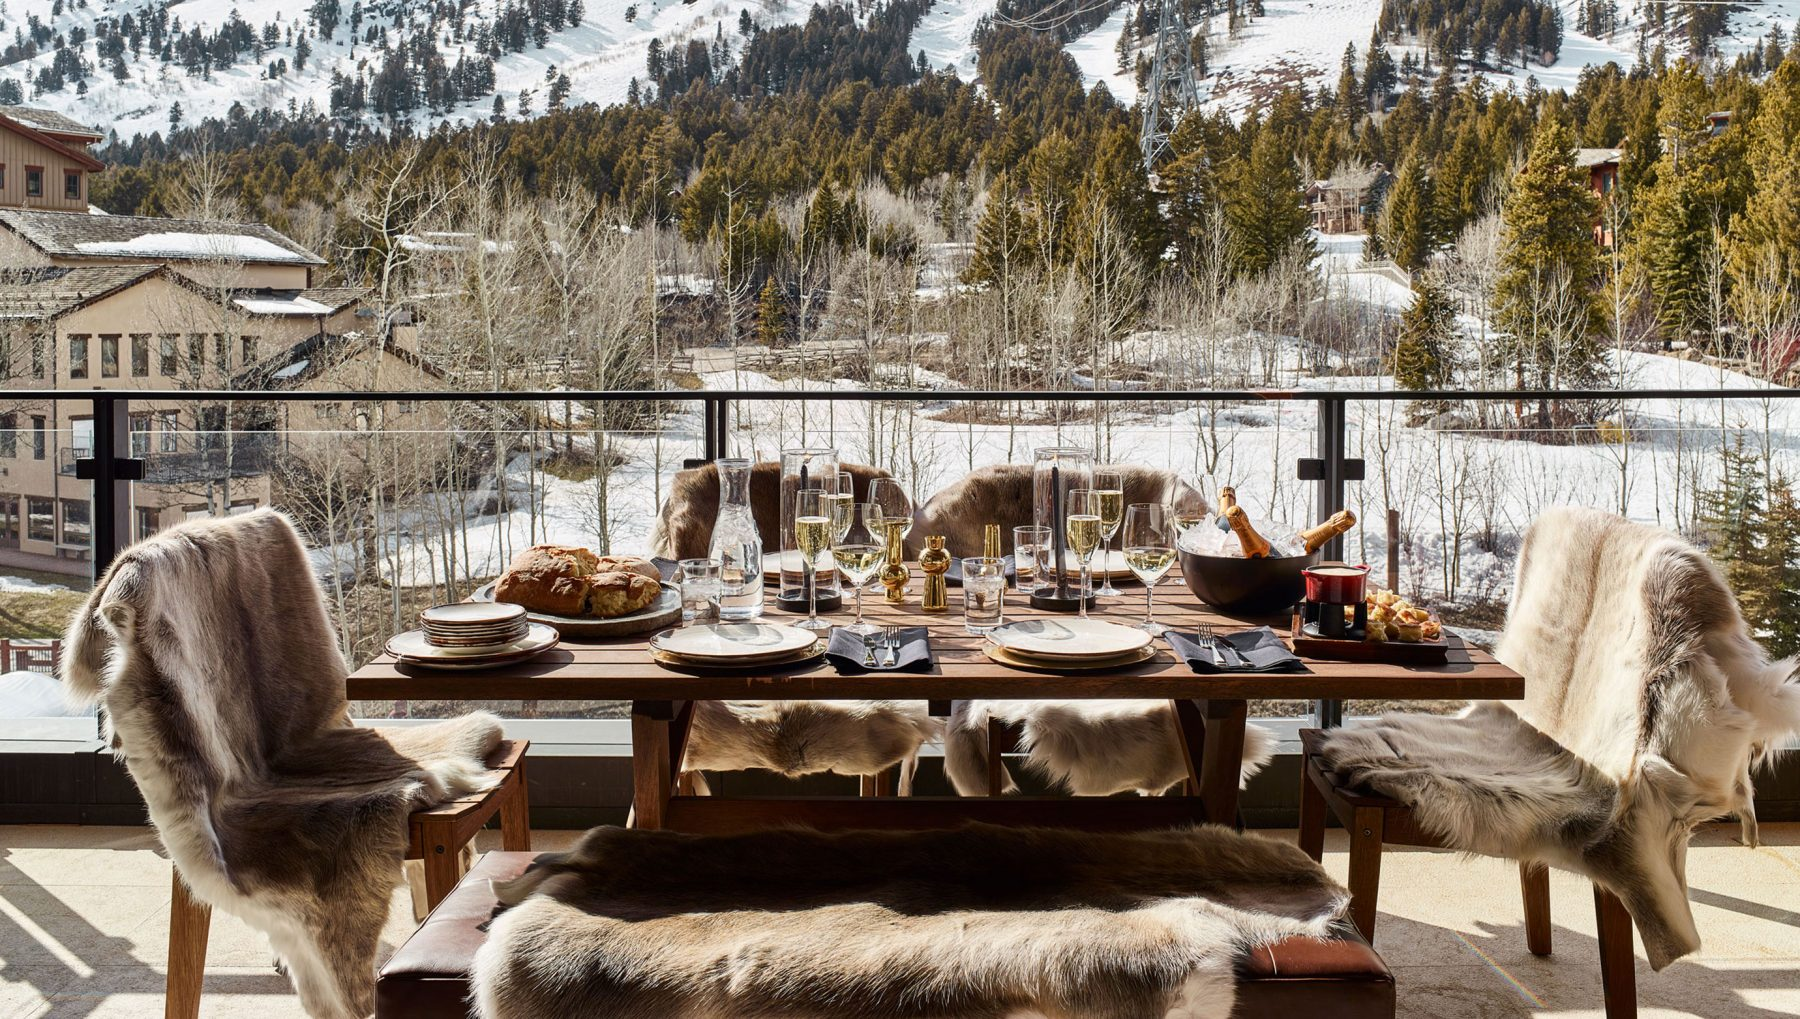 outdoor dining table overlooking mountains